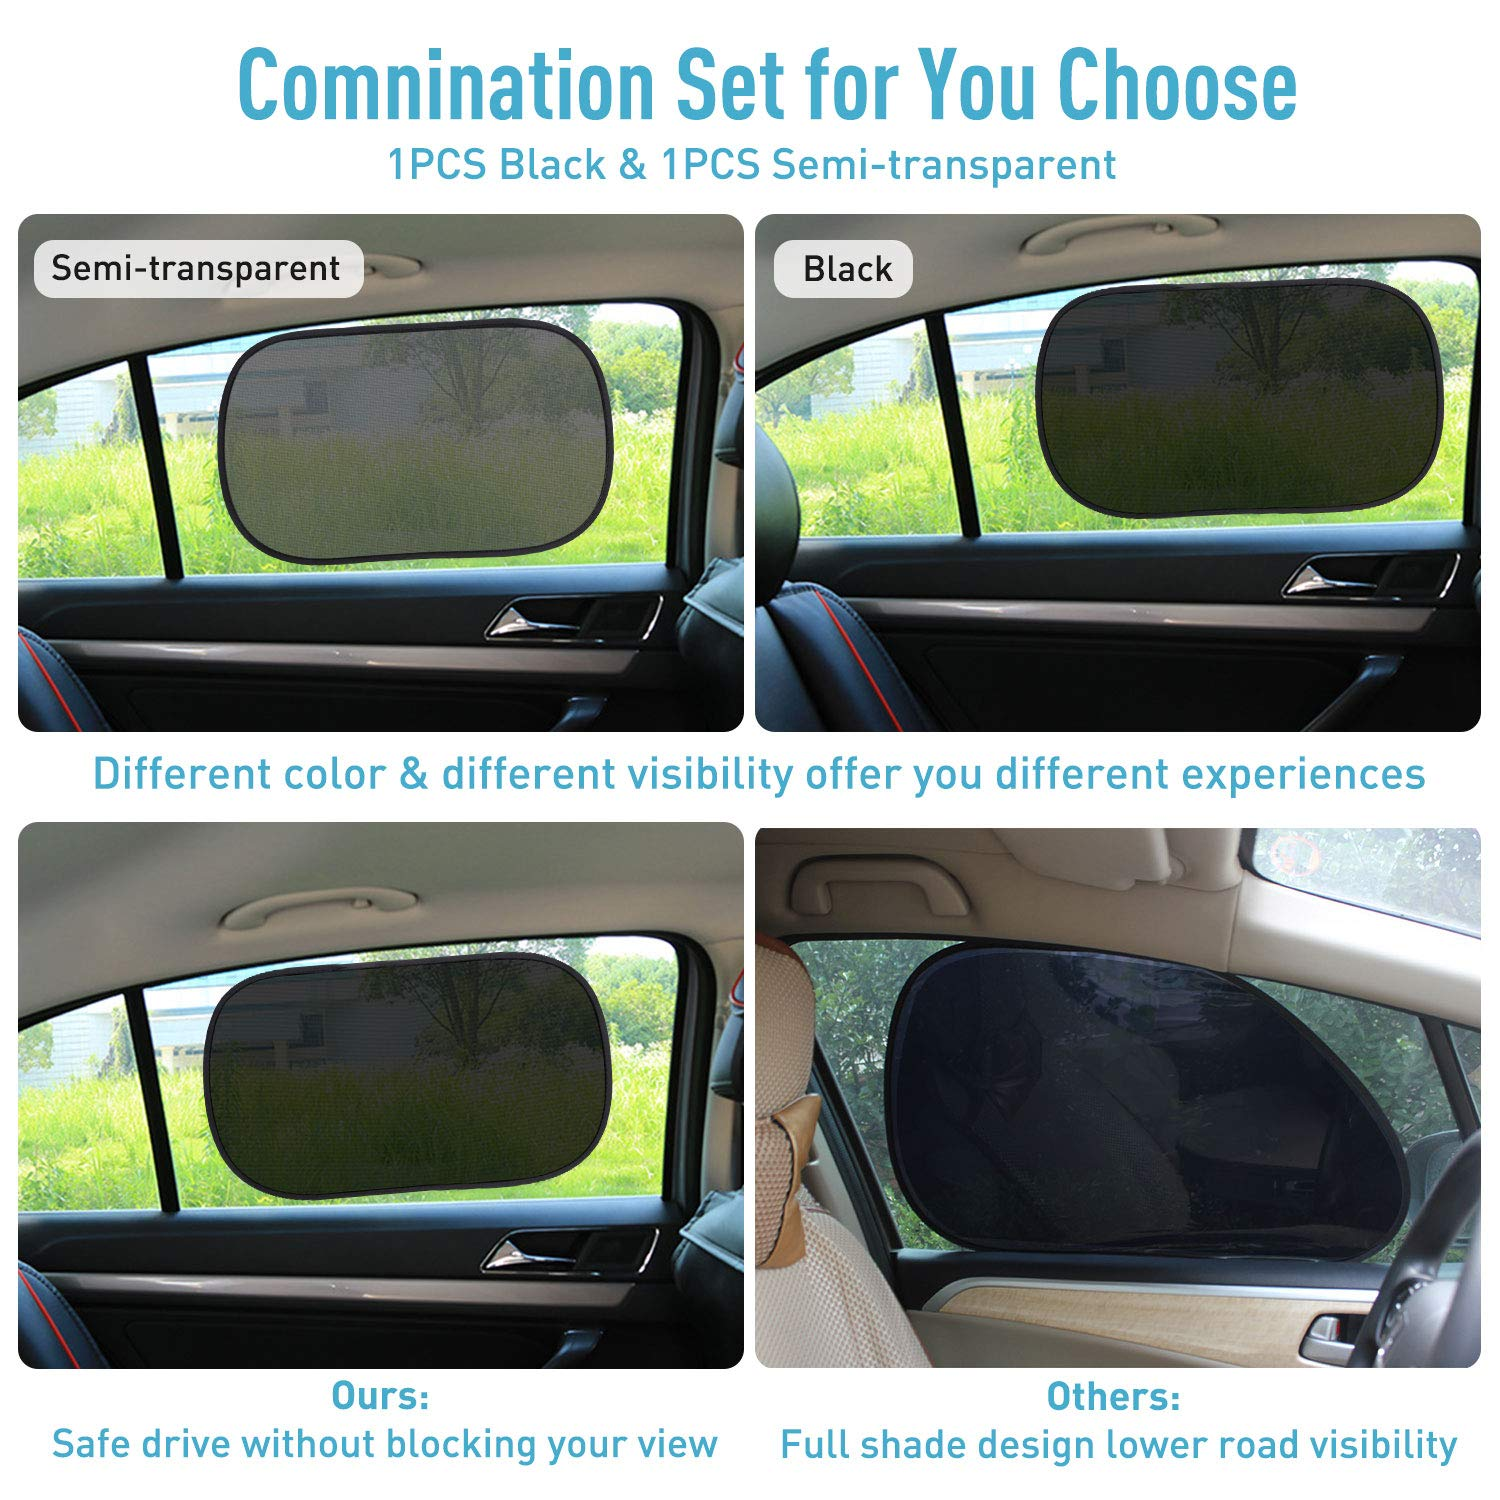 JOJOY LUX 4 Pack Car SunShades for Baby Side Window Sun Shades Auto Sun Shiled Blocking UV Ray,80 GSM for Maximum UV//Sun//Glare Protection,2 Pack 20x12 and 2 Pack 17.5x14 2 Colors